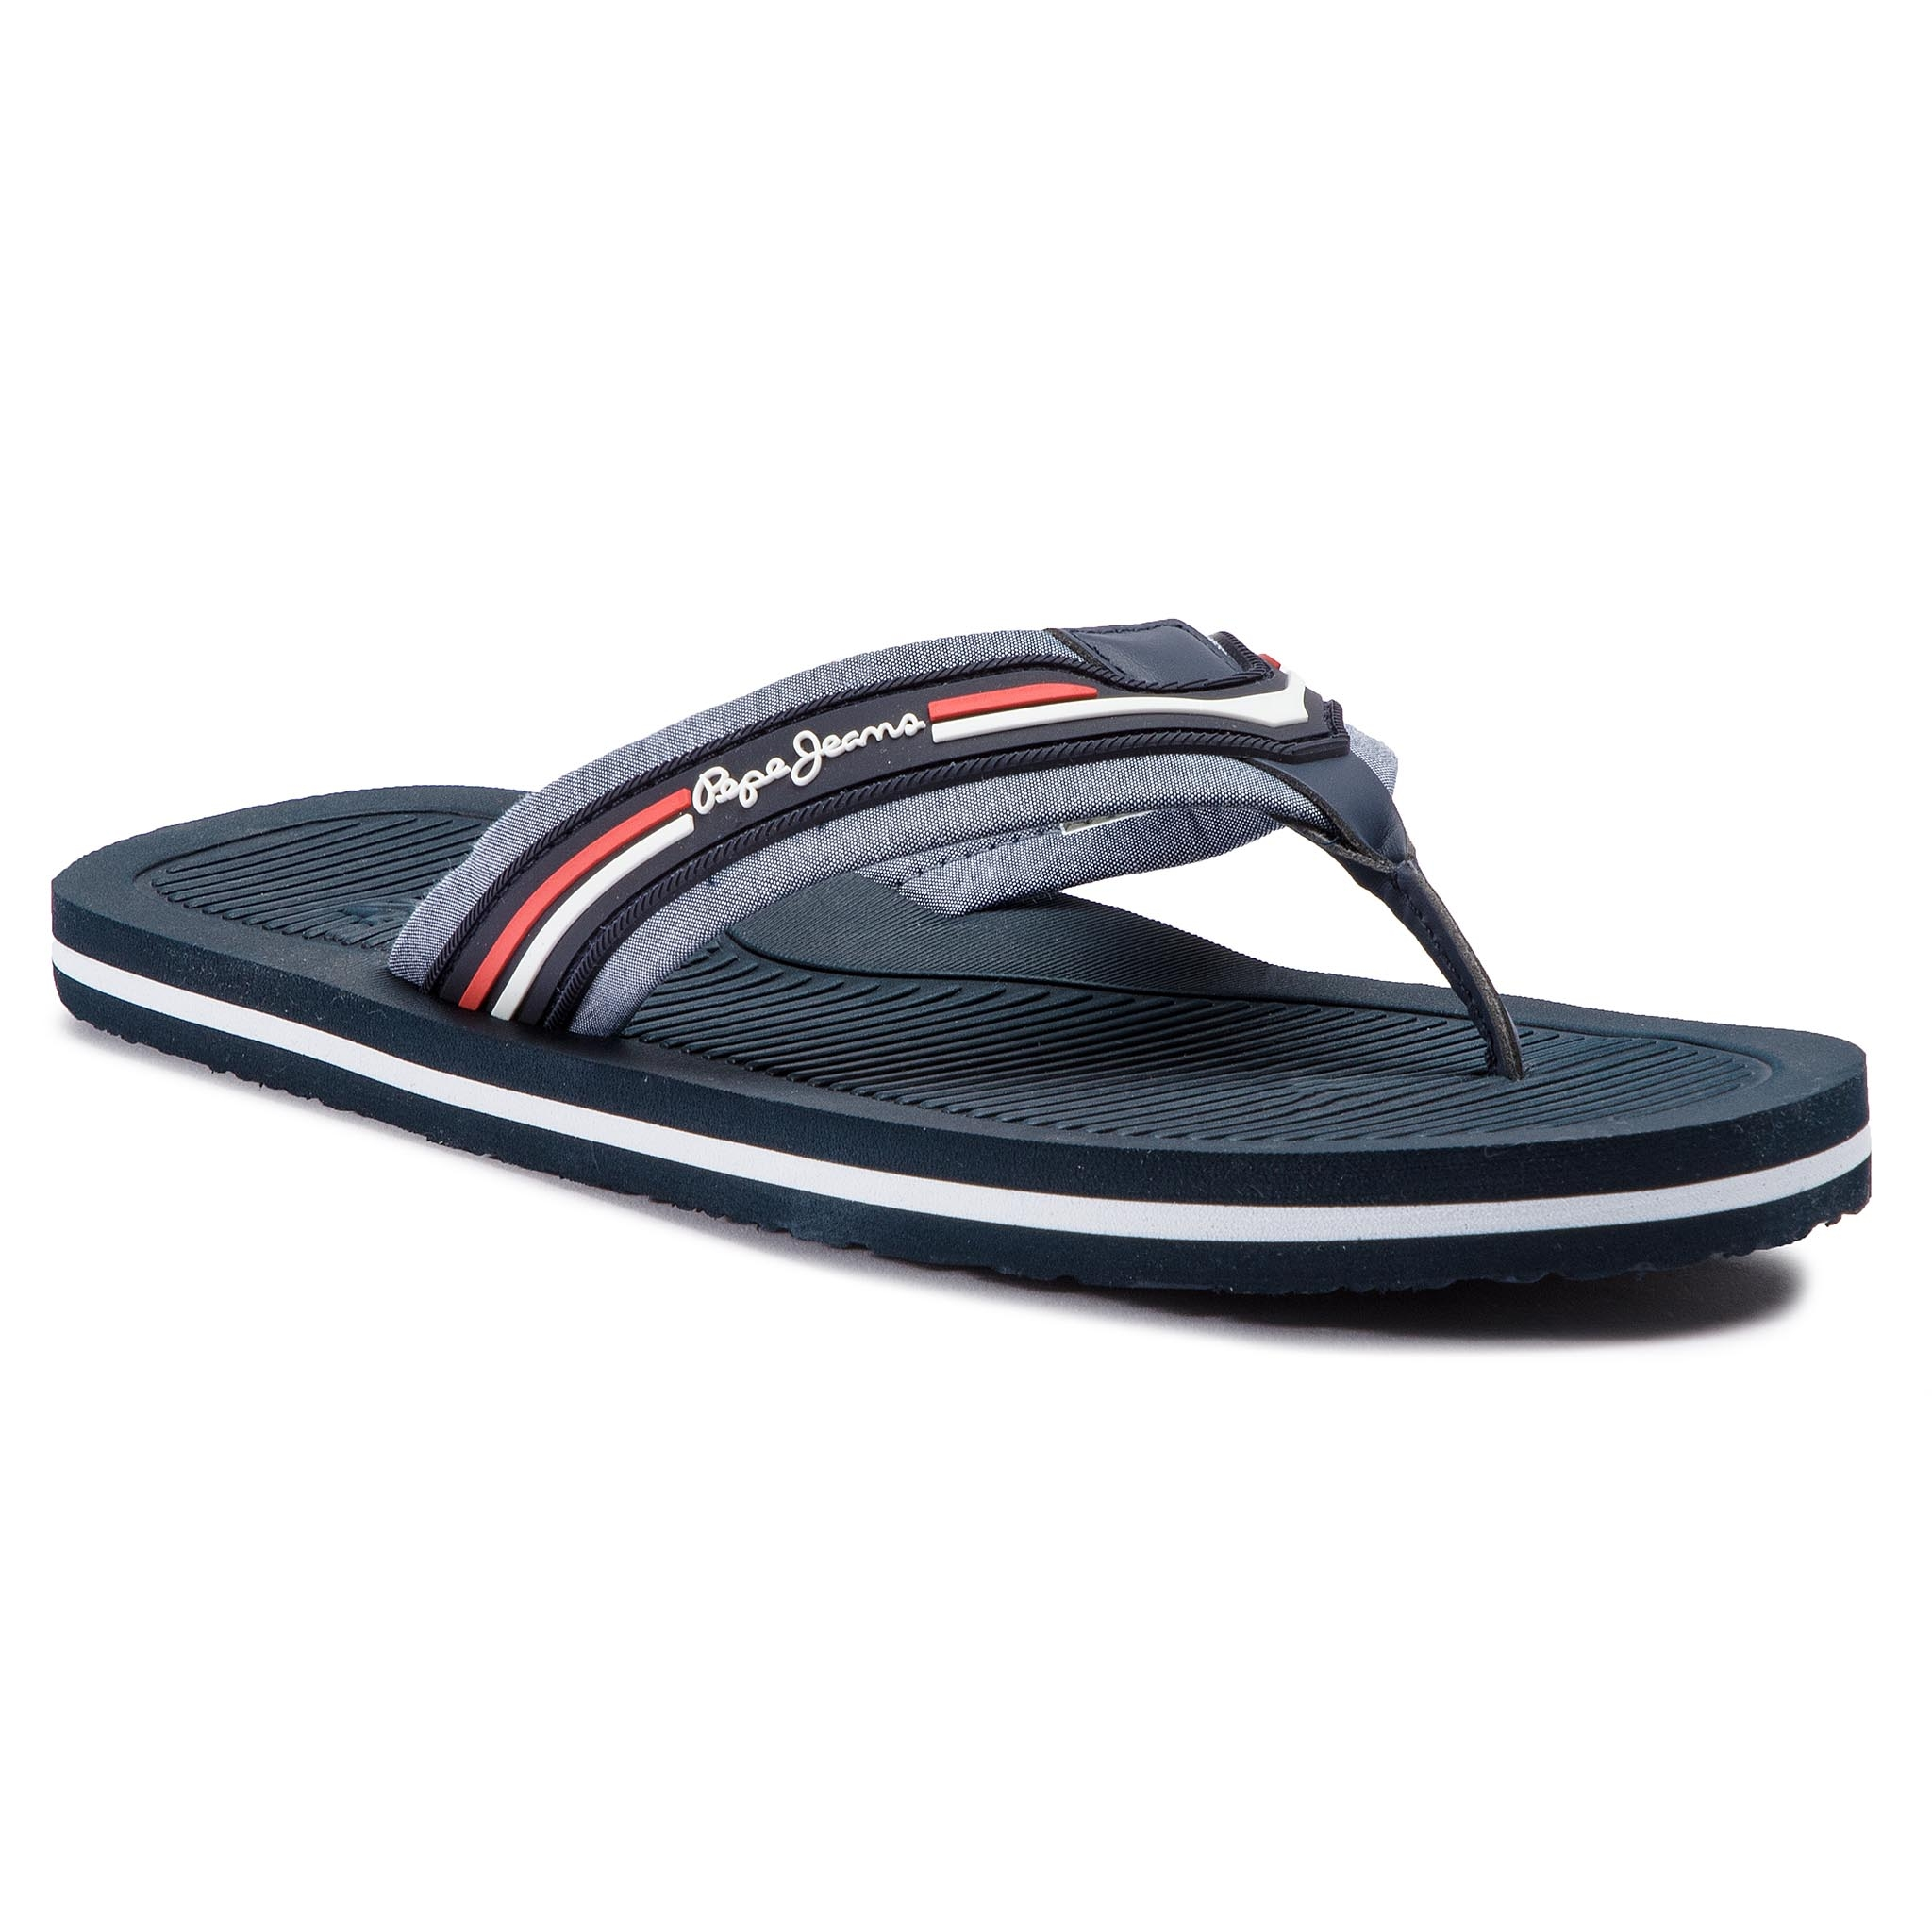 Flip Flop Pepe Jeans - Off Beach Chambray Pms90065 Chambray 564 imagine